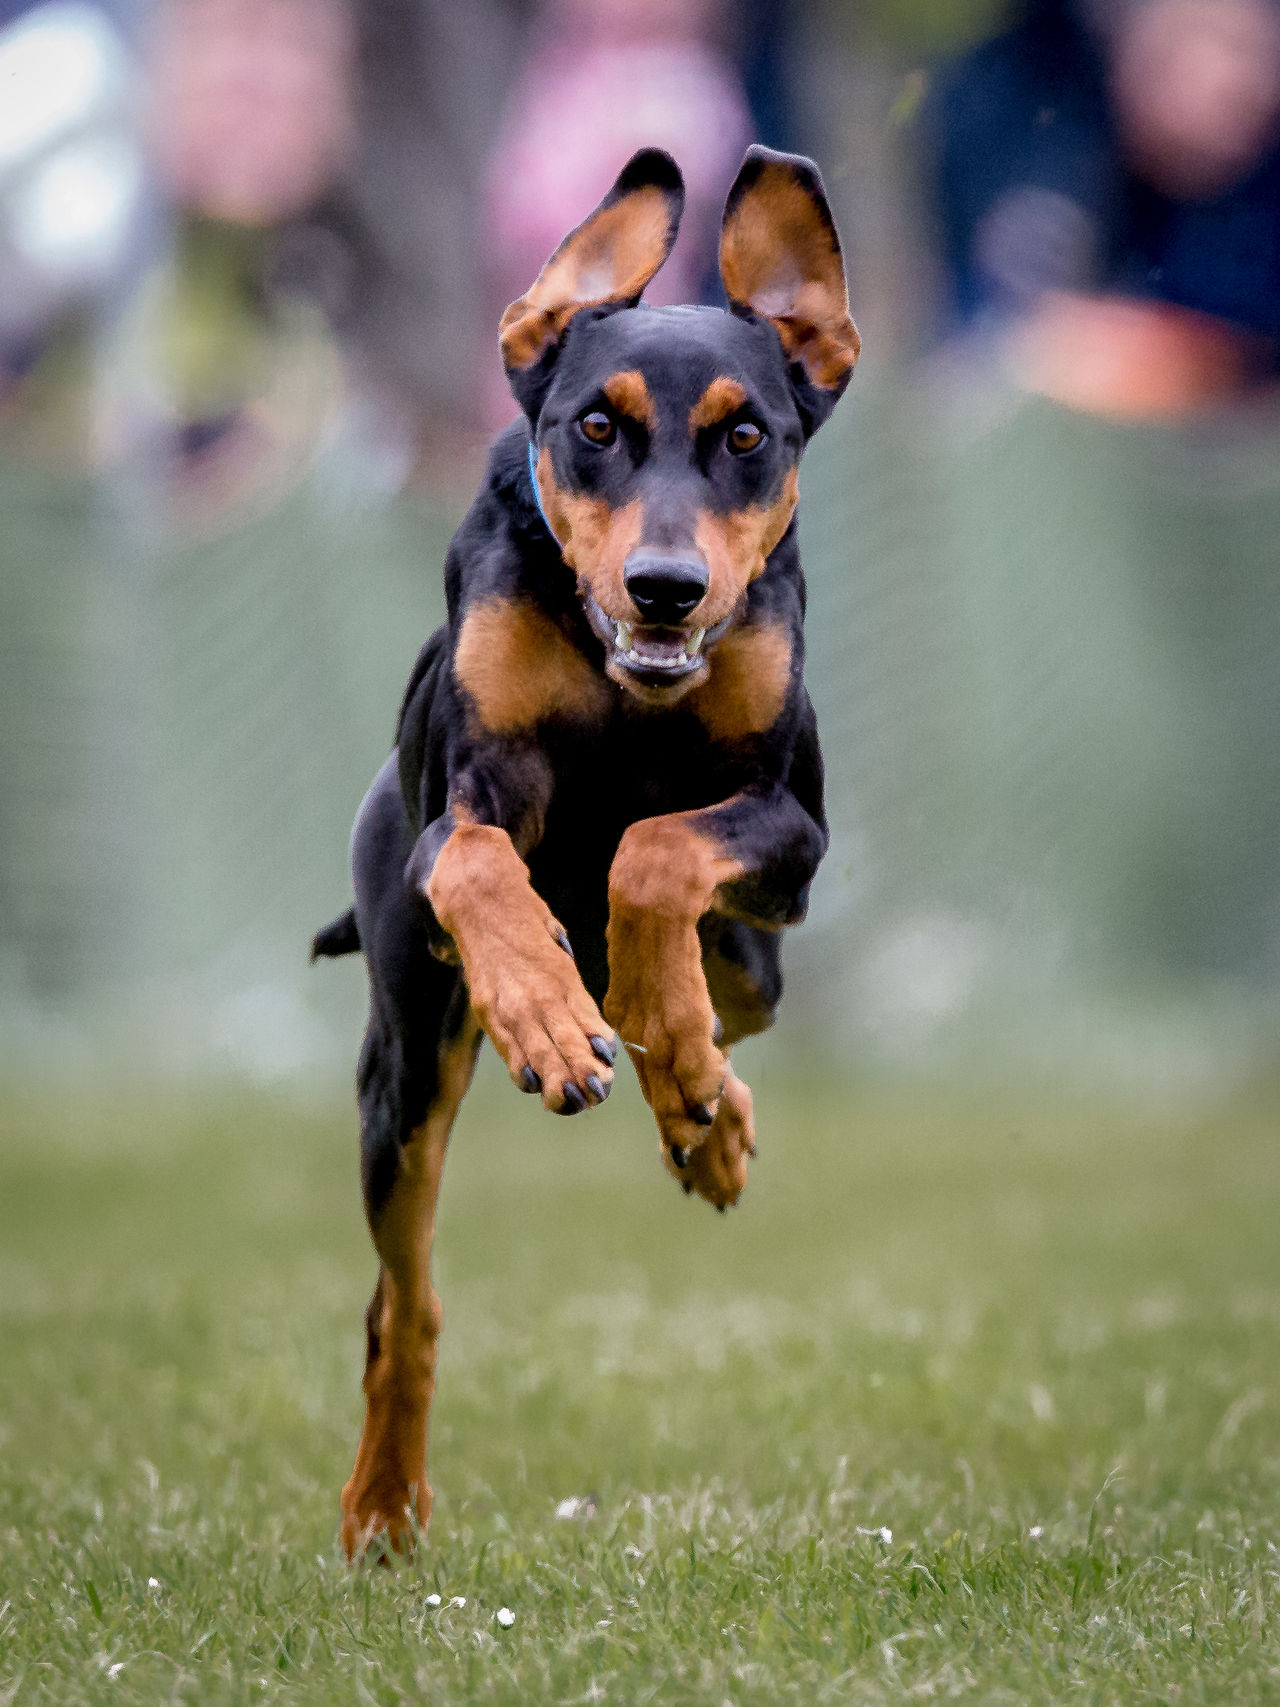 Animal Themes Dog From Ahead One Animal Pets Portrait Racing Dog Running Dog